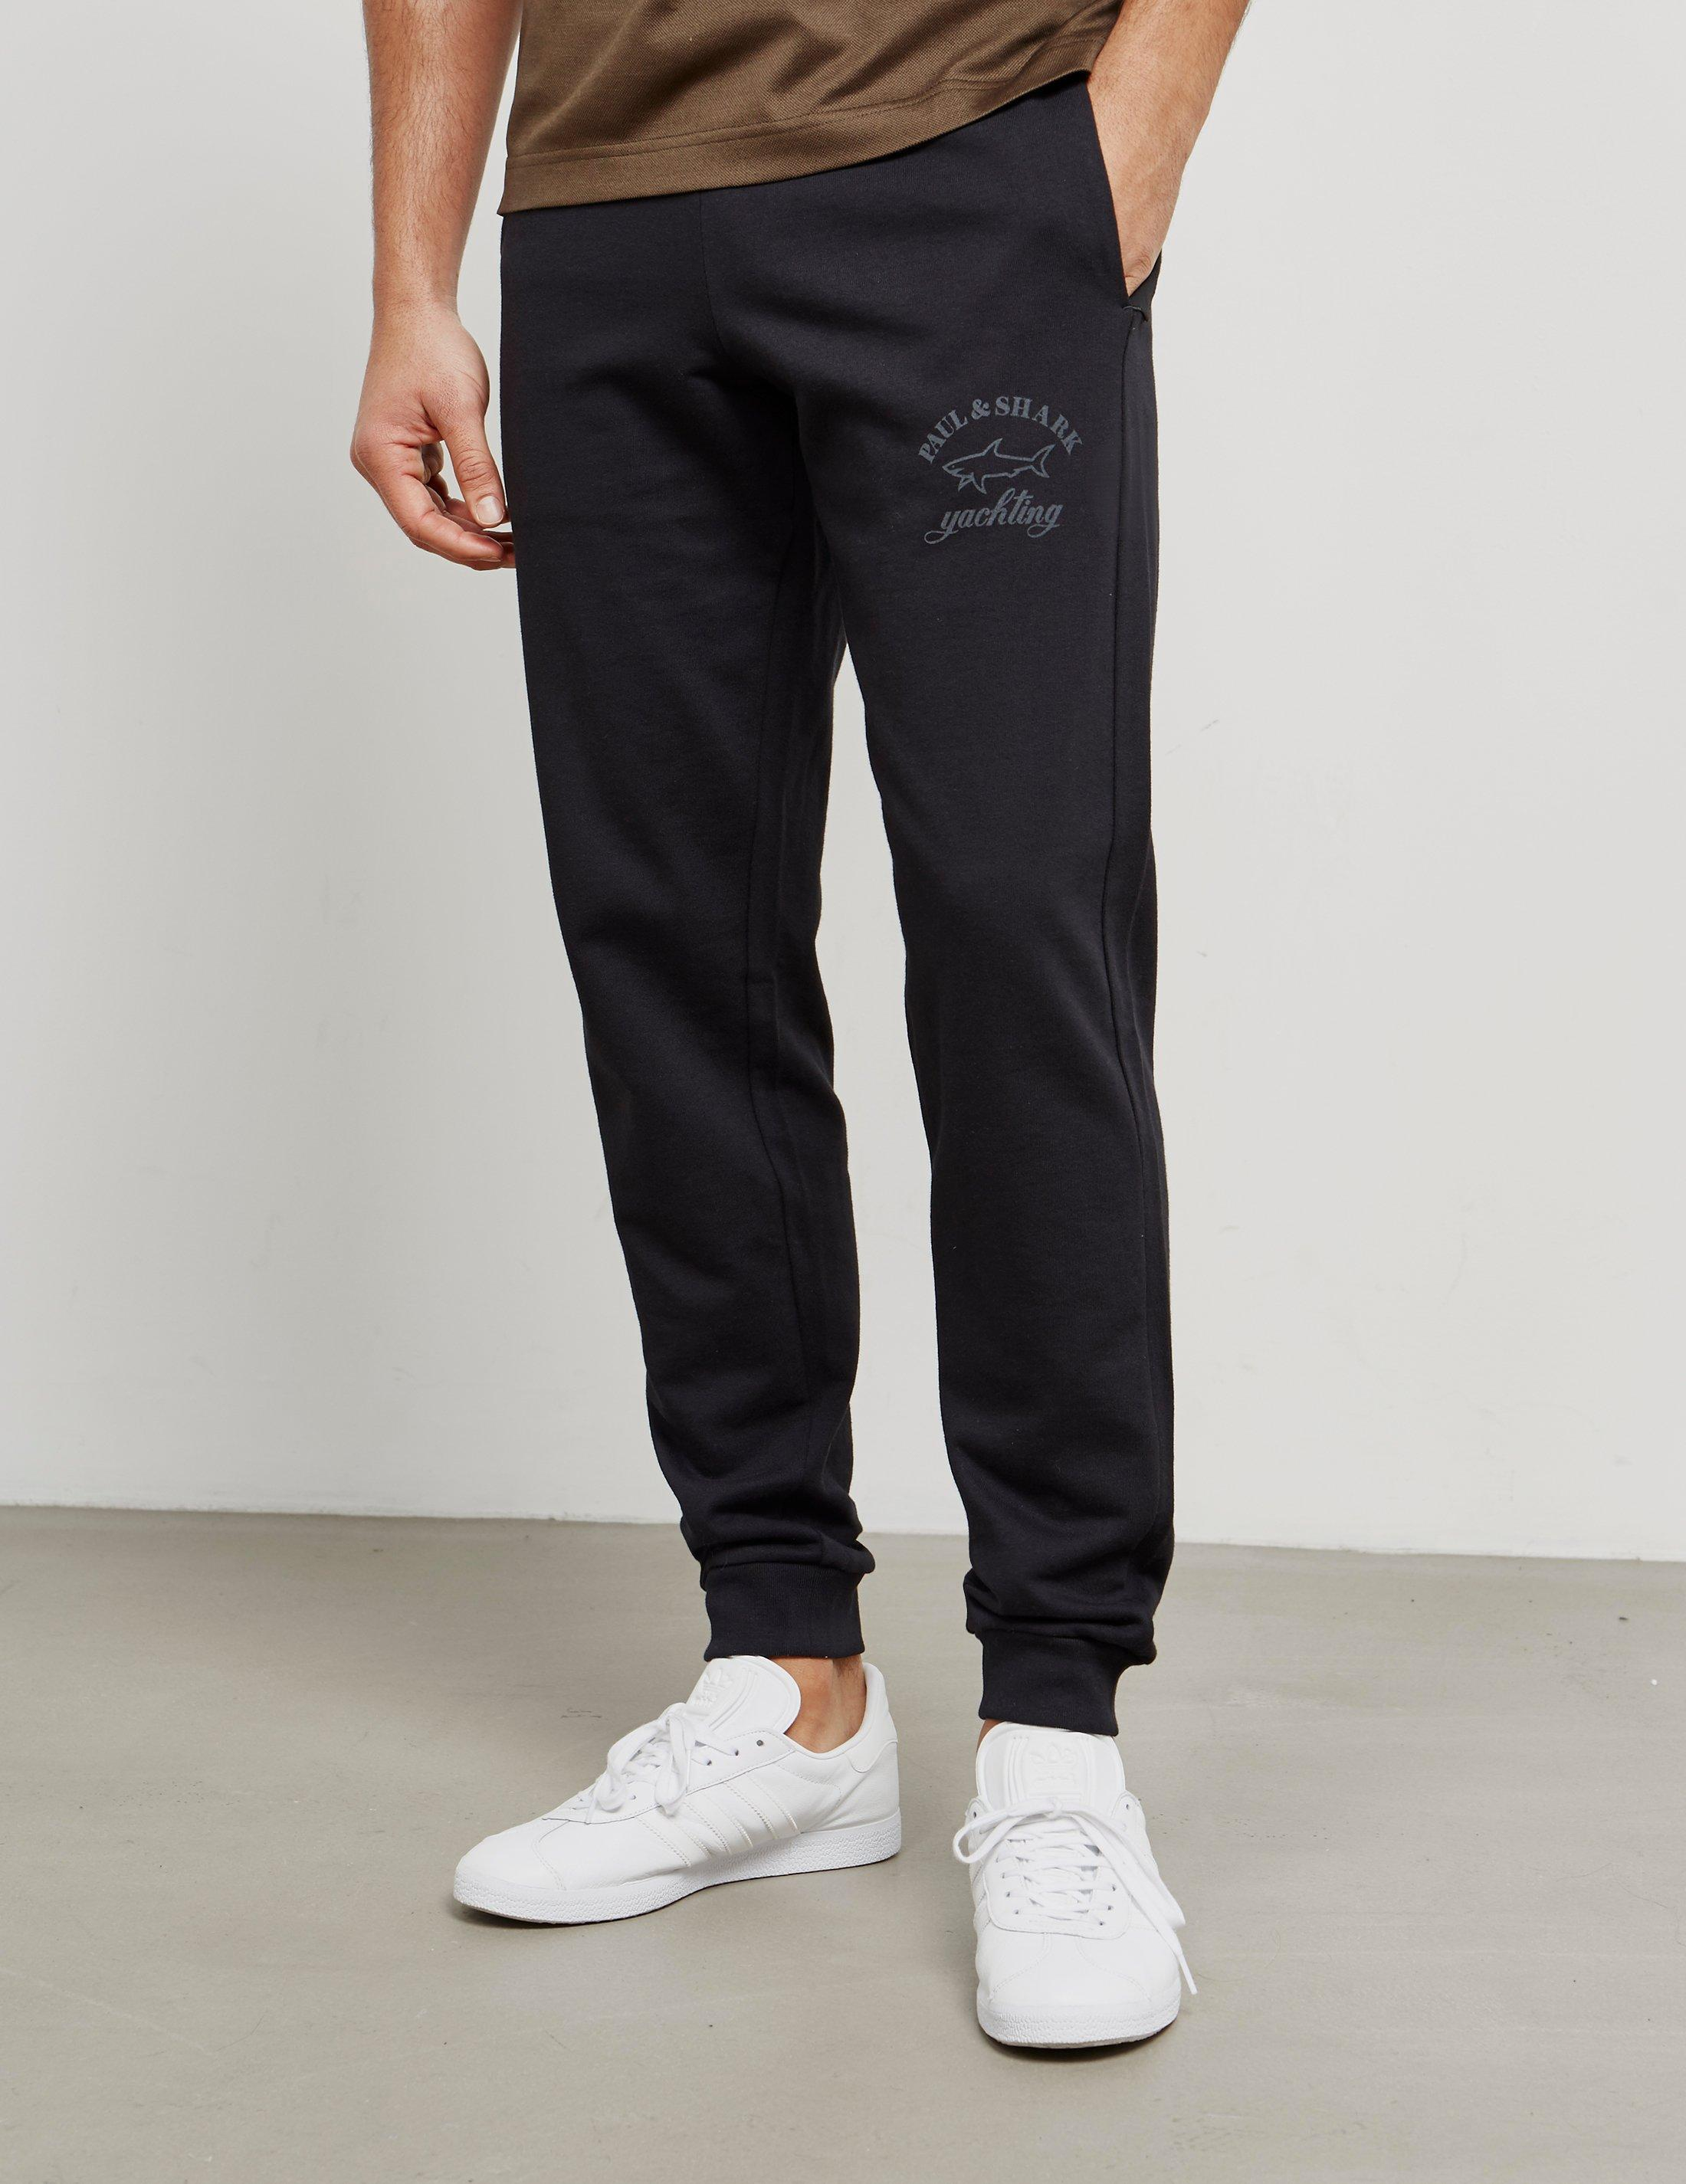 official photos c8ae0 5760c Paul   Shark Cuffed Fleece Pant - Exclusive Black Mens